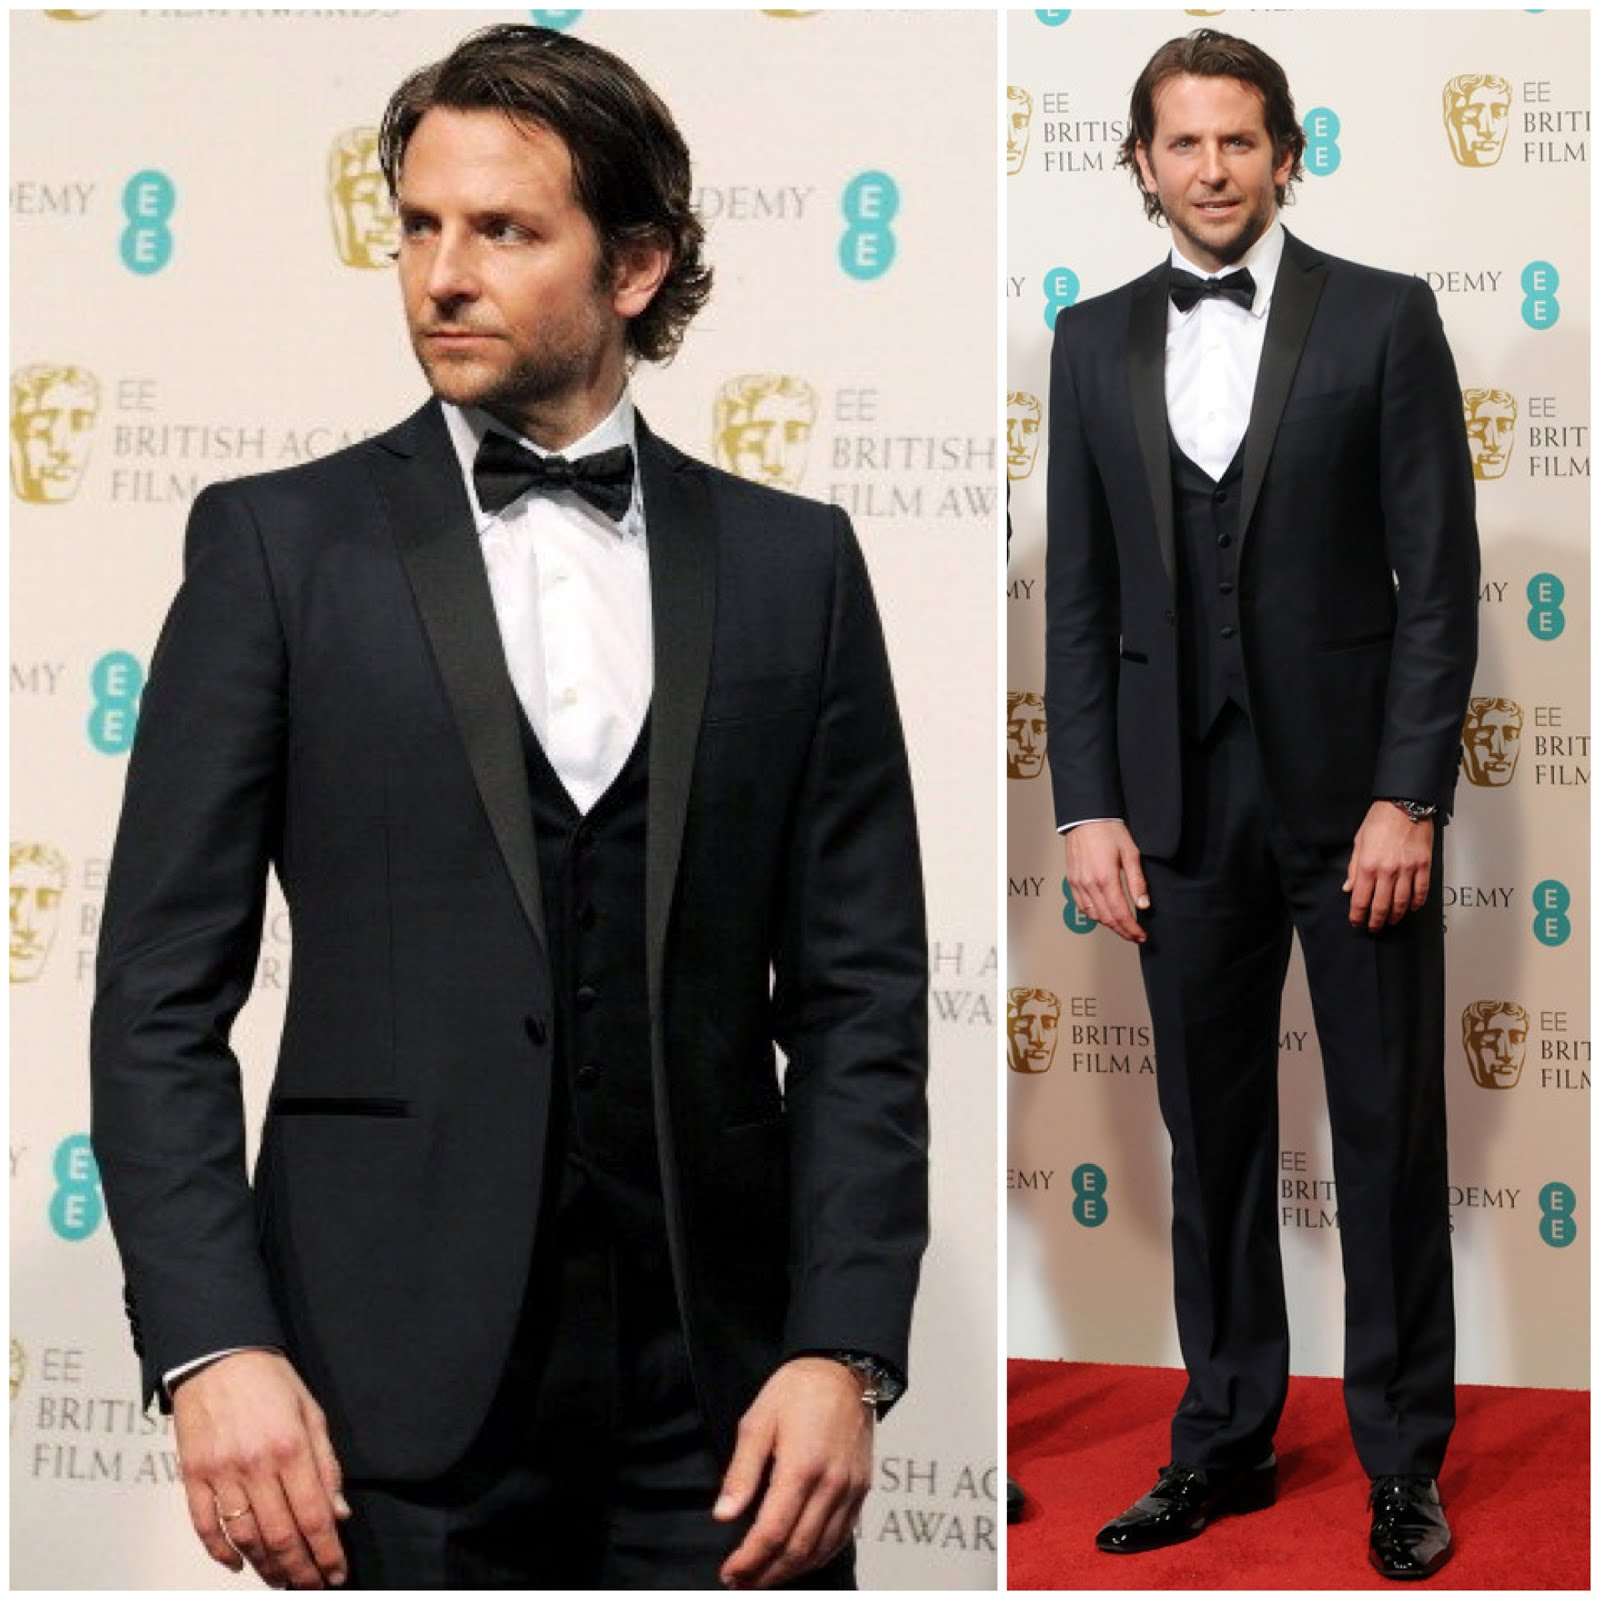 00O00 Menswear Blog Bradley Cooper in Salvatore Ferragamo - 66th BAFTA Awards, London